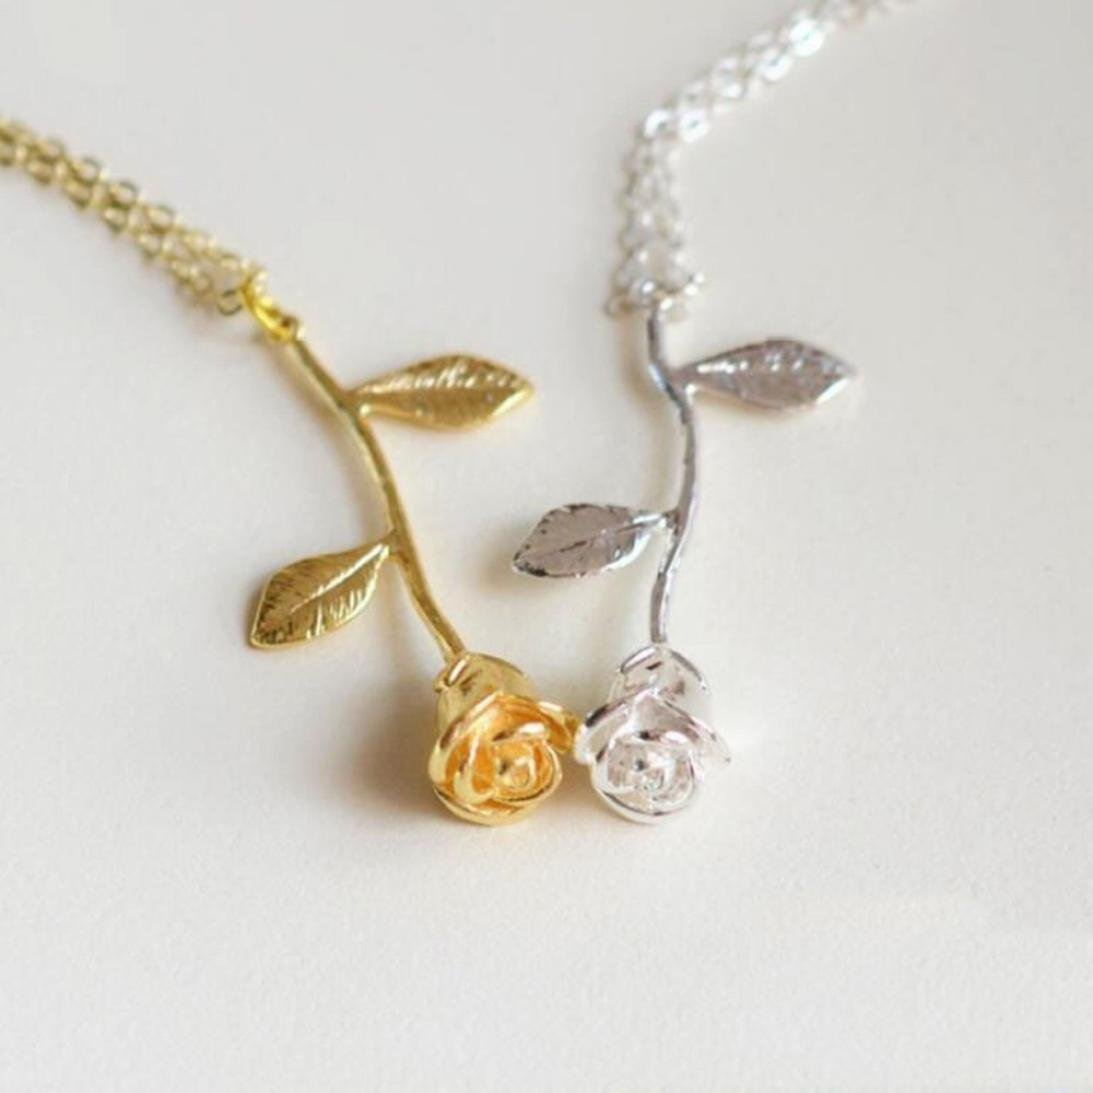 Becoler Women Necklace Rose Pendant Necklace Anniversary Gift Personalized